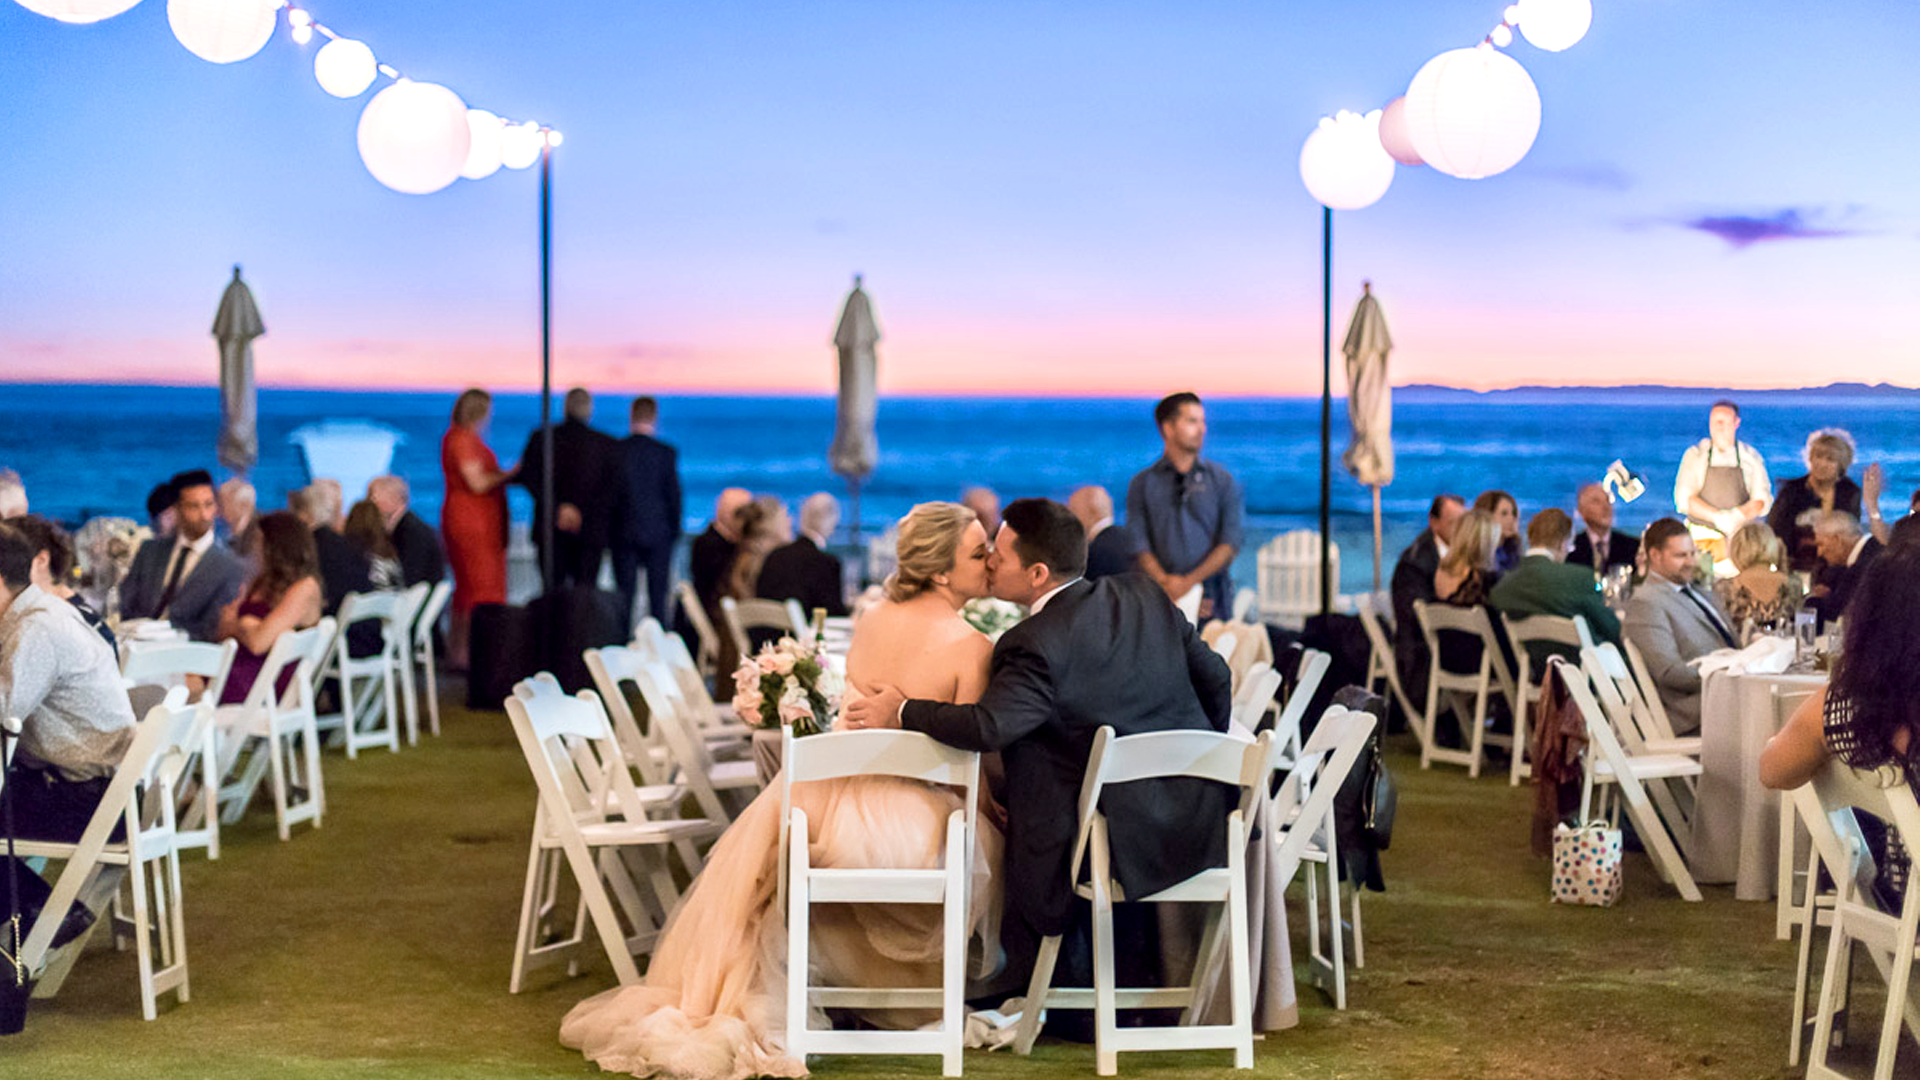 Marisa + Patrick | Dana Point, California | Monarch Beach Resort